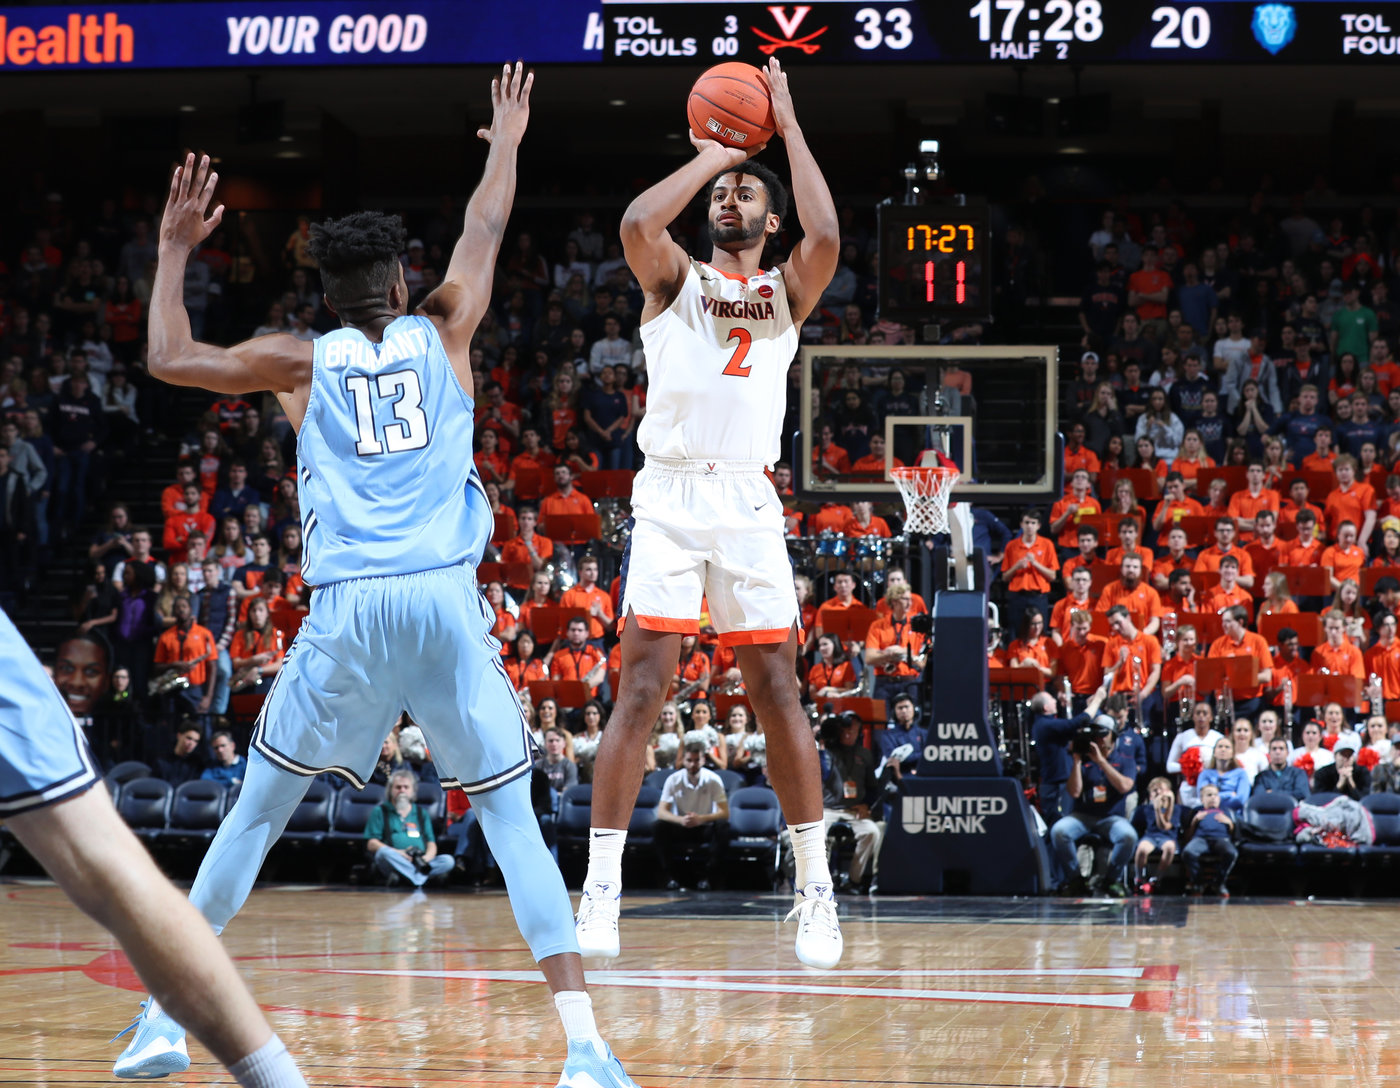 Despite missing three games due to a wrist injury, guard Braxton Key ranked second on the team in scoring (9.8 points per game) and was the team's leading rebounder (7.2 boards per contest). (photo by Matt Riley/courtesy UVA)